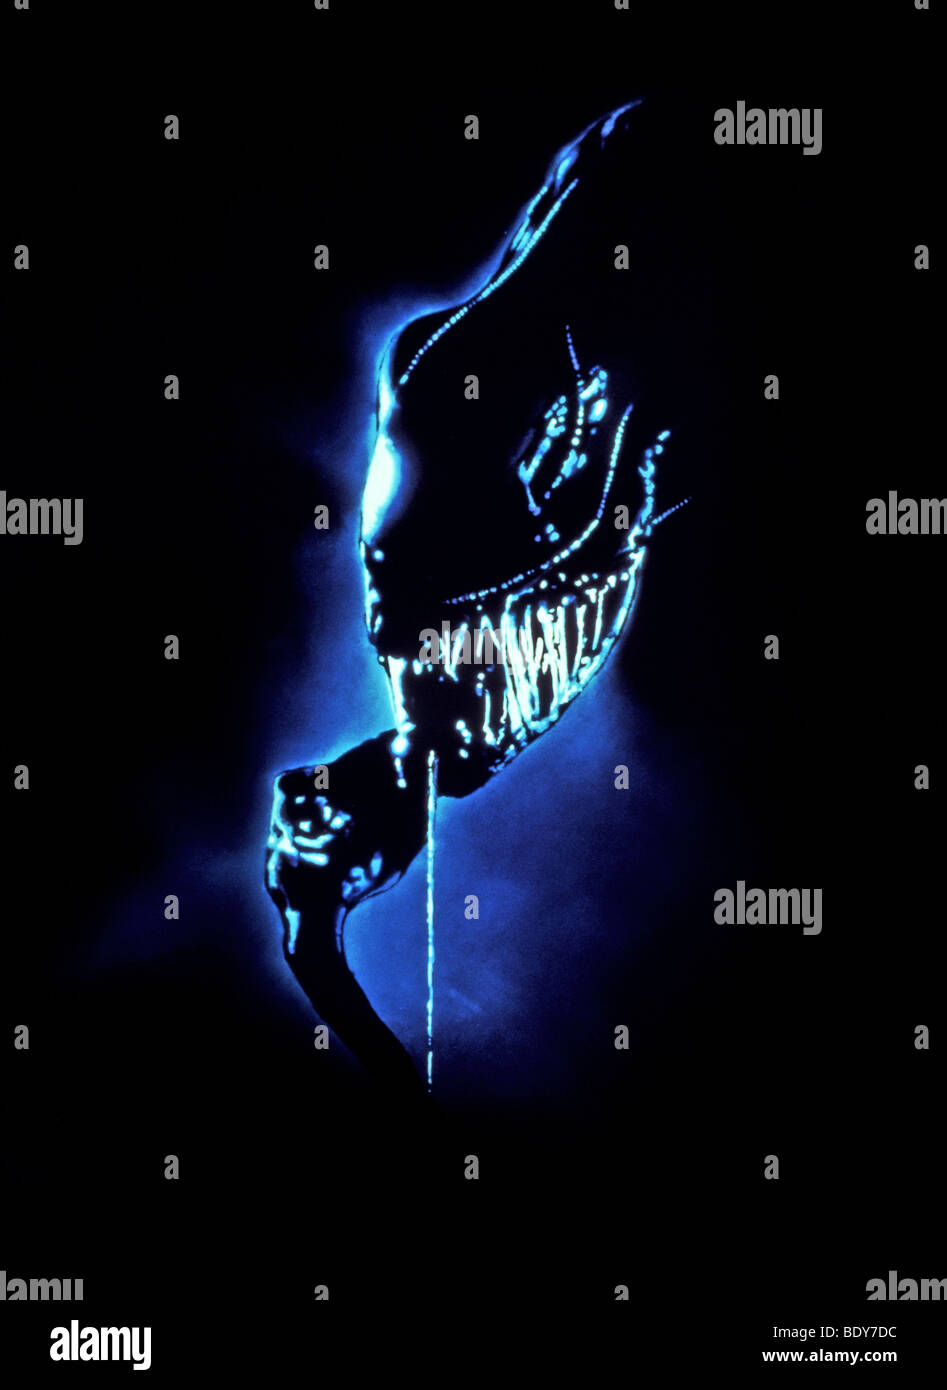 Alien Movie Stock Photos Alien Movie Stock Images Alamy